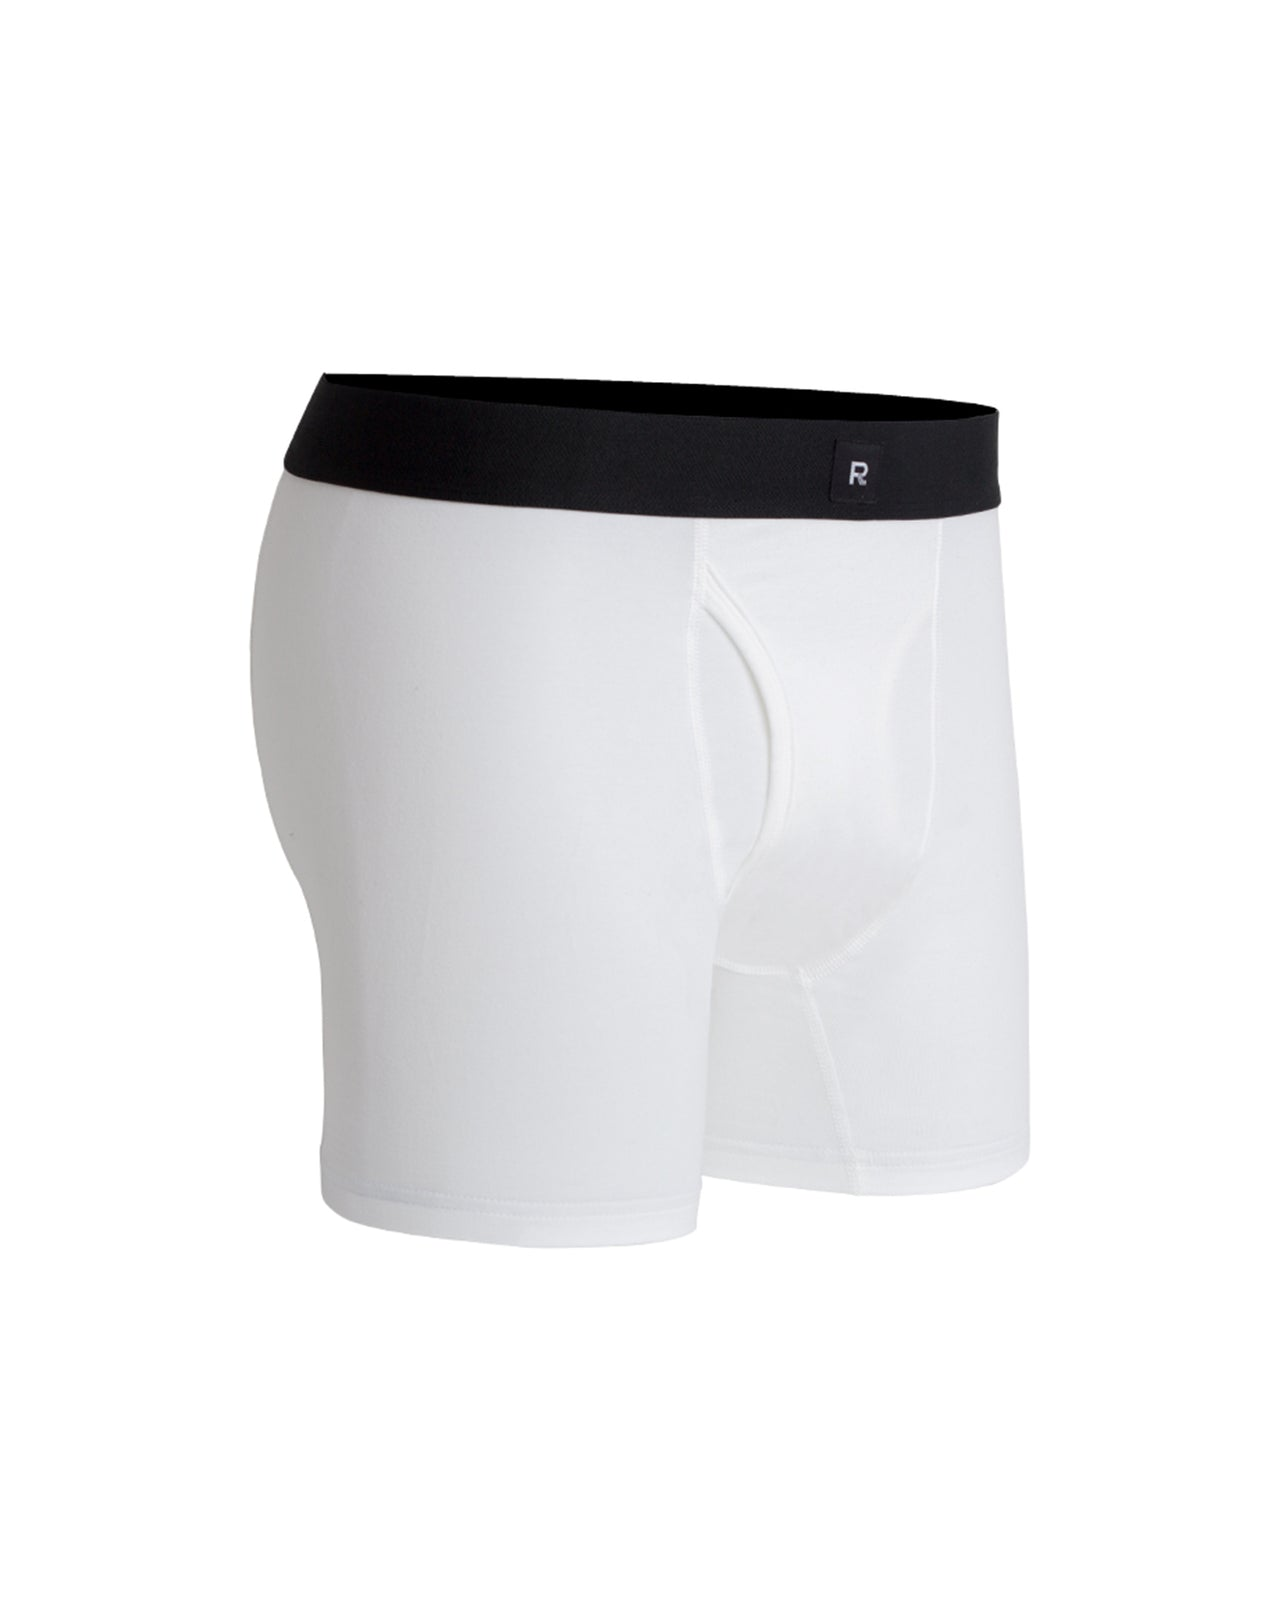 Smith Boxer Brief - Color: White | White